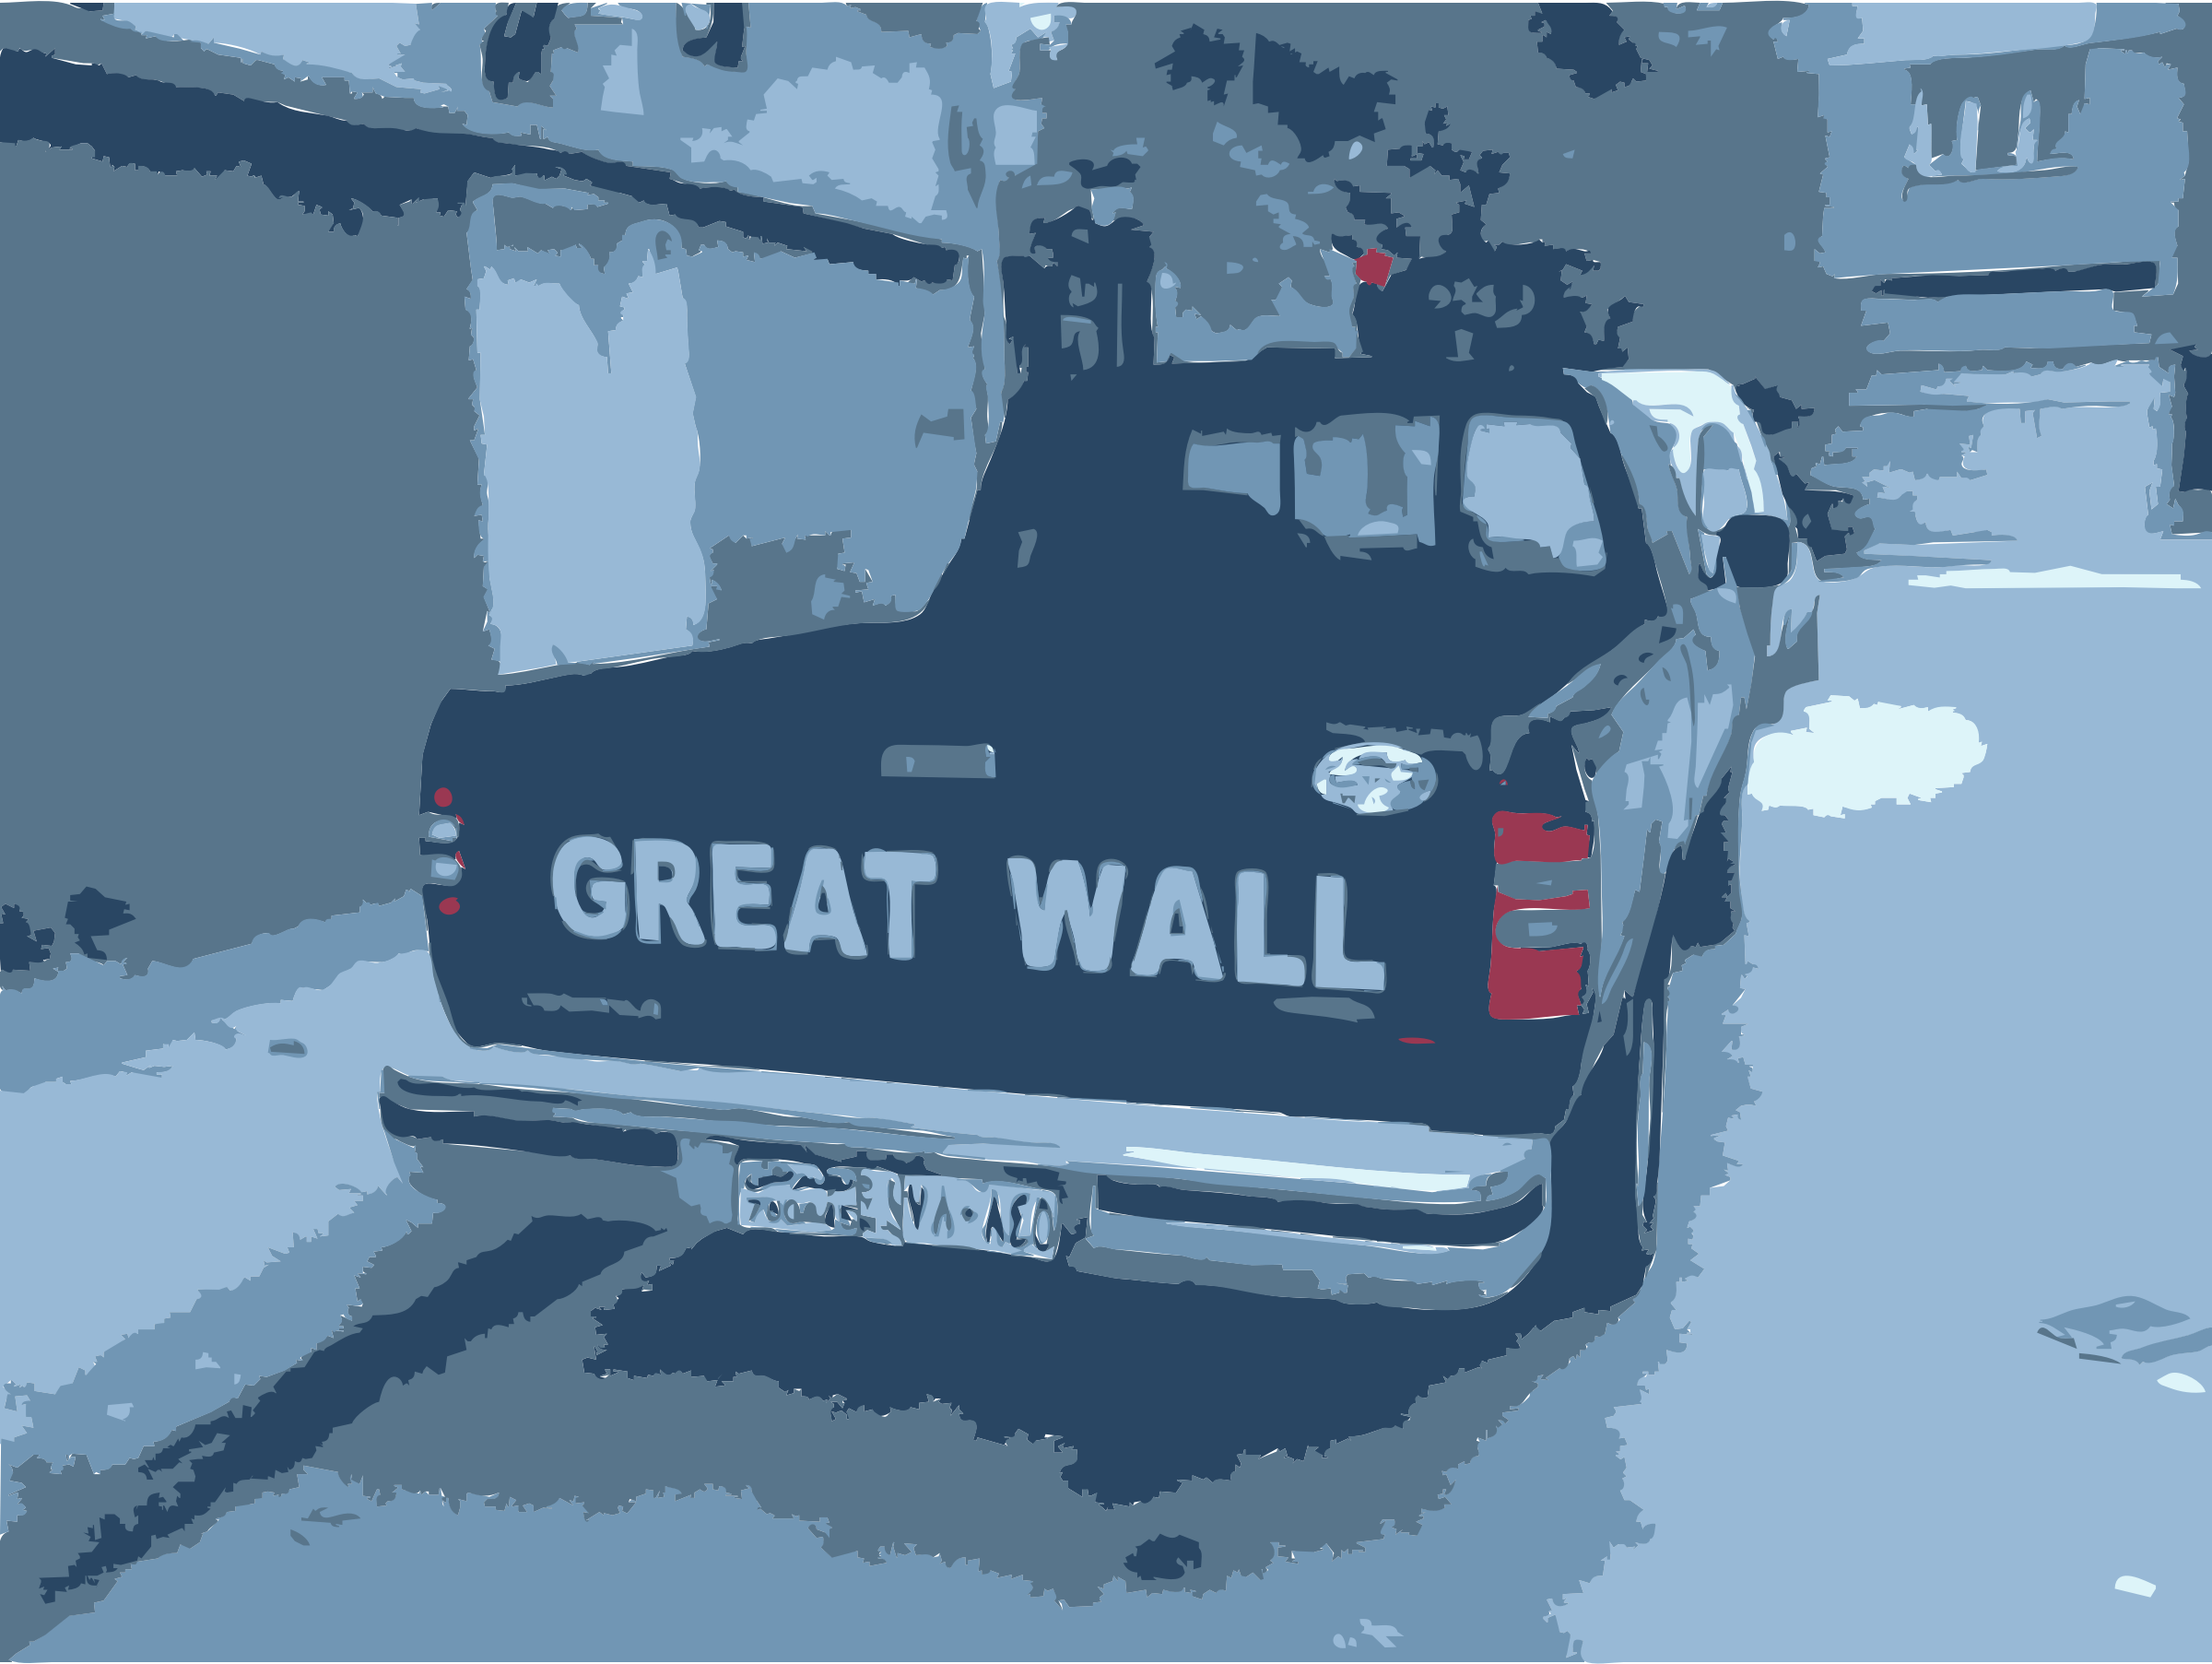 Great Wall Truck in Syria by rejon